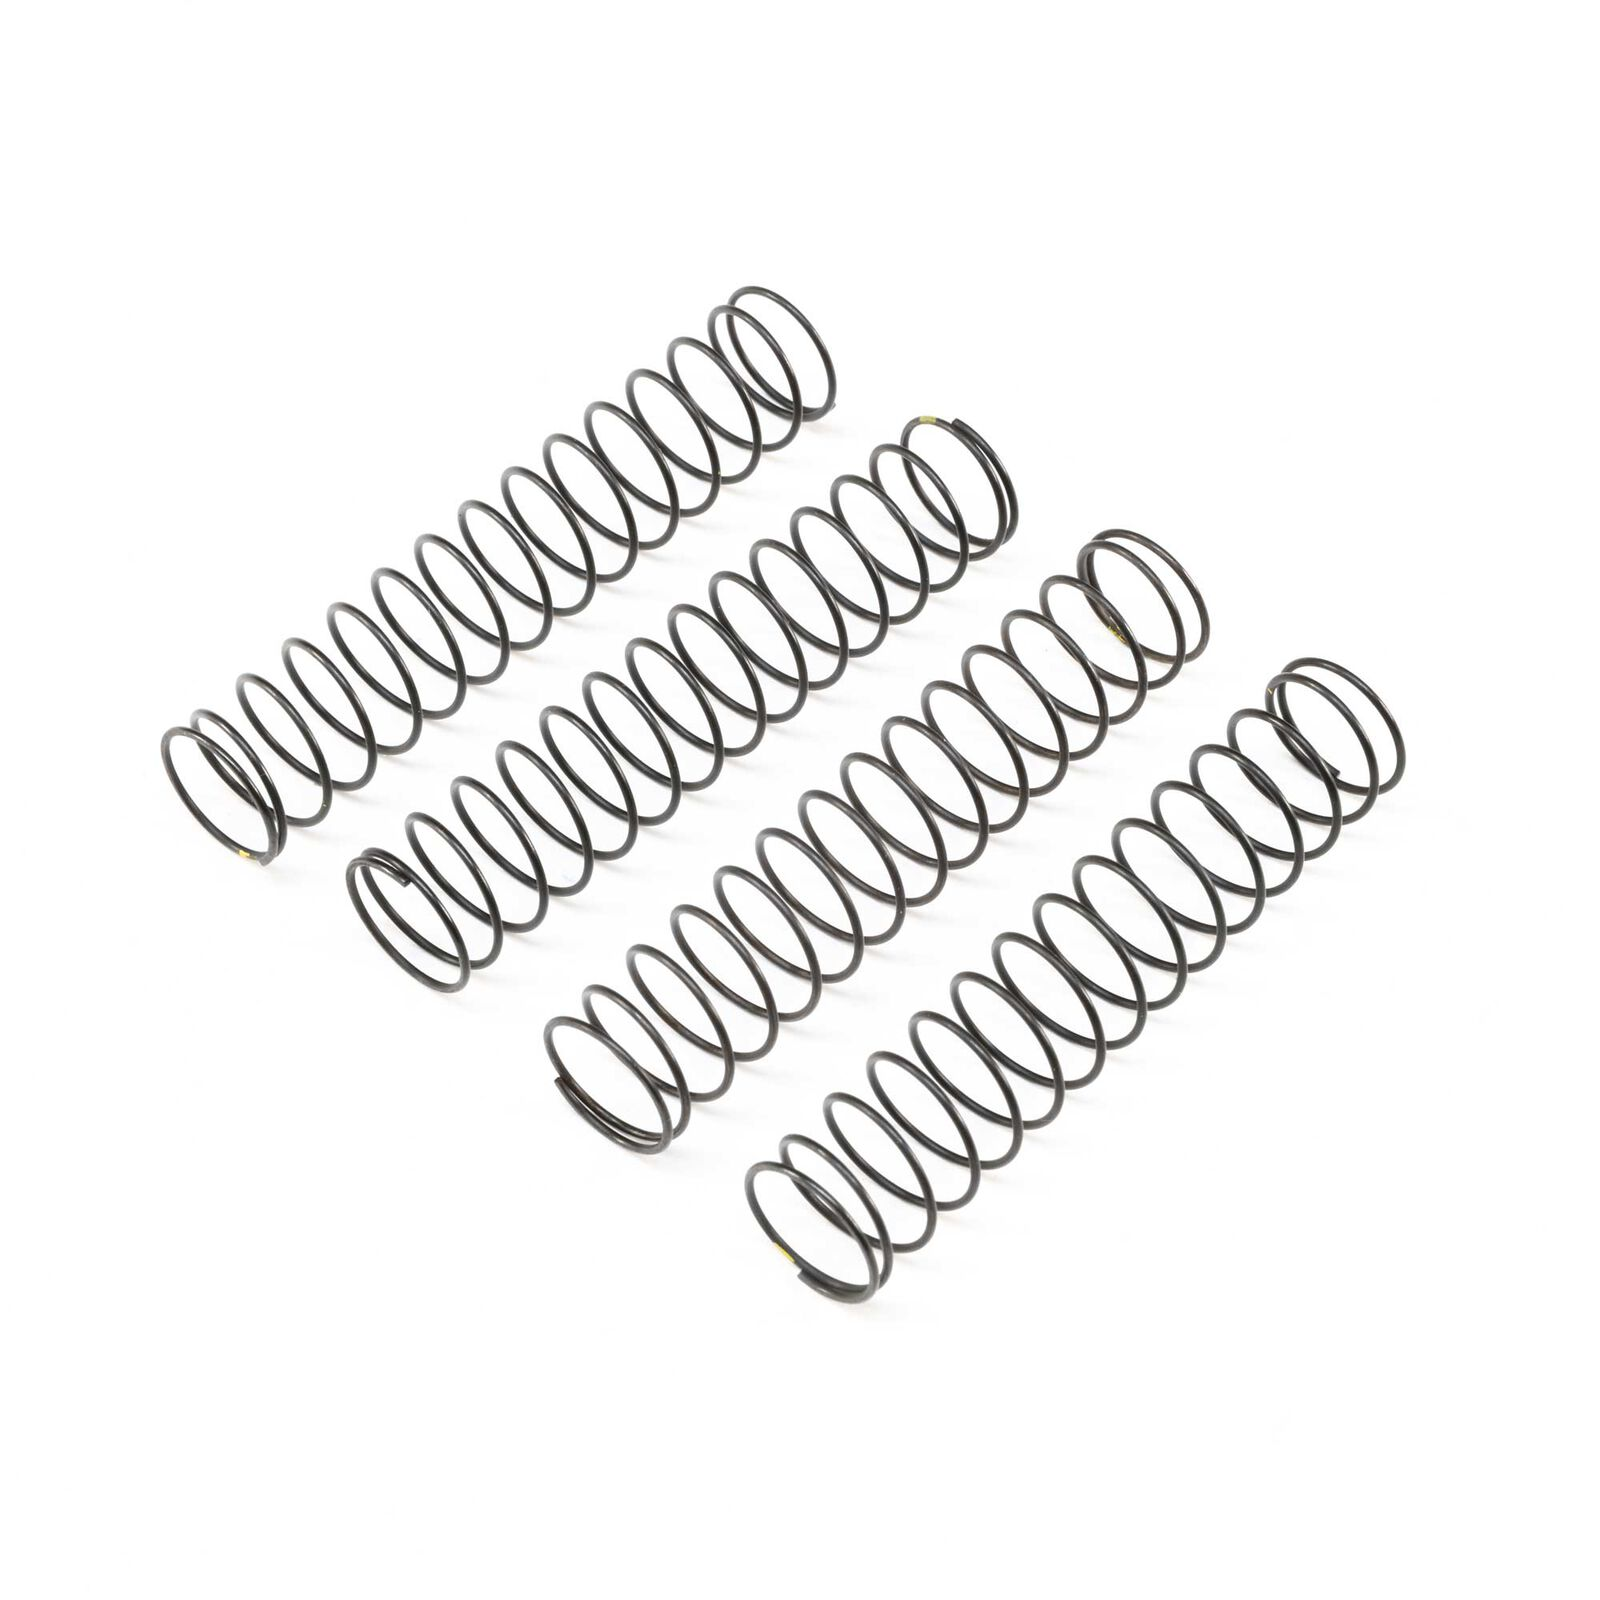 Shock Spring Soft, Yellow, 1.1 rate (4): LMT